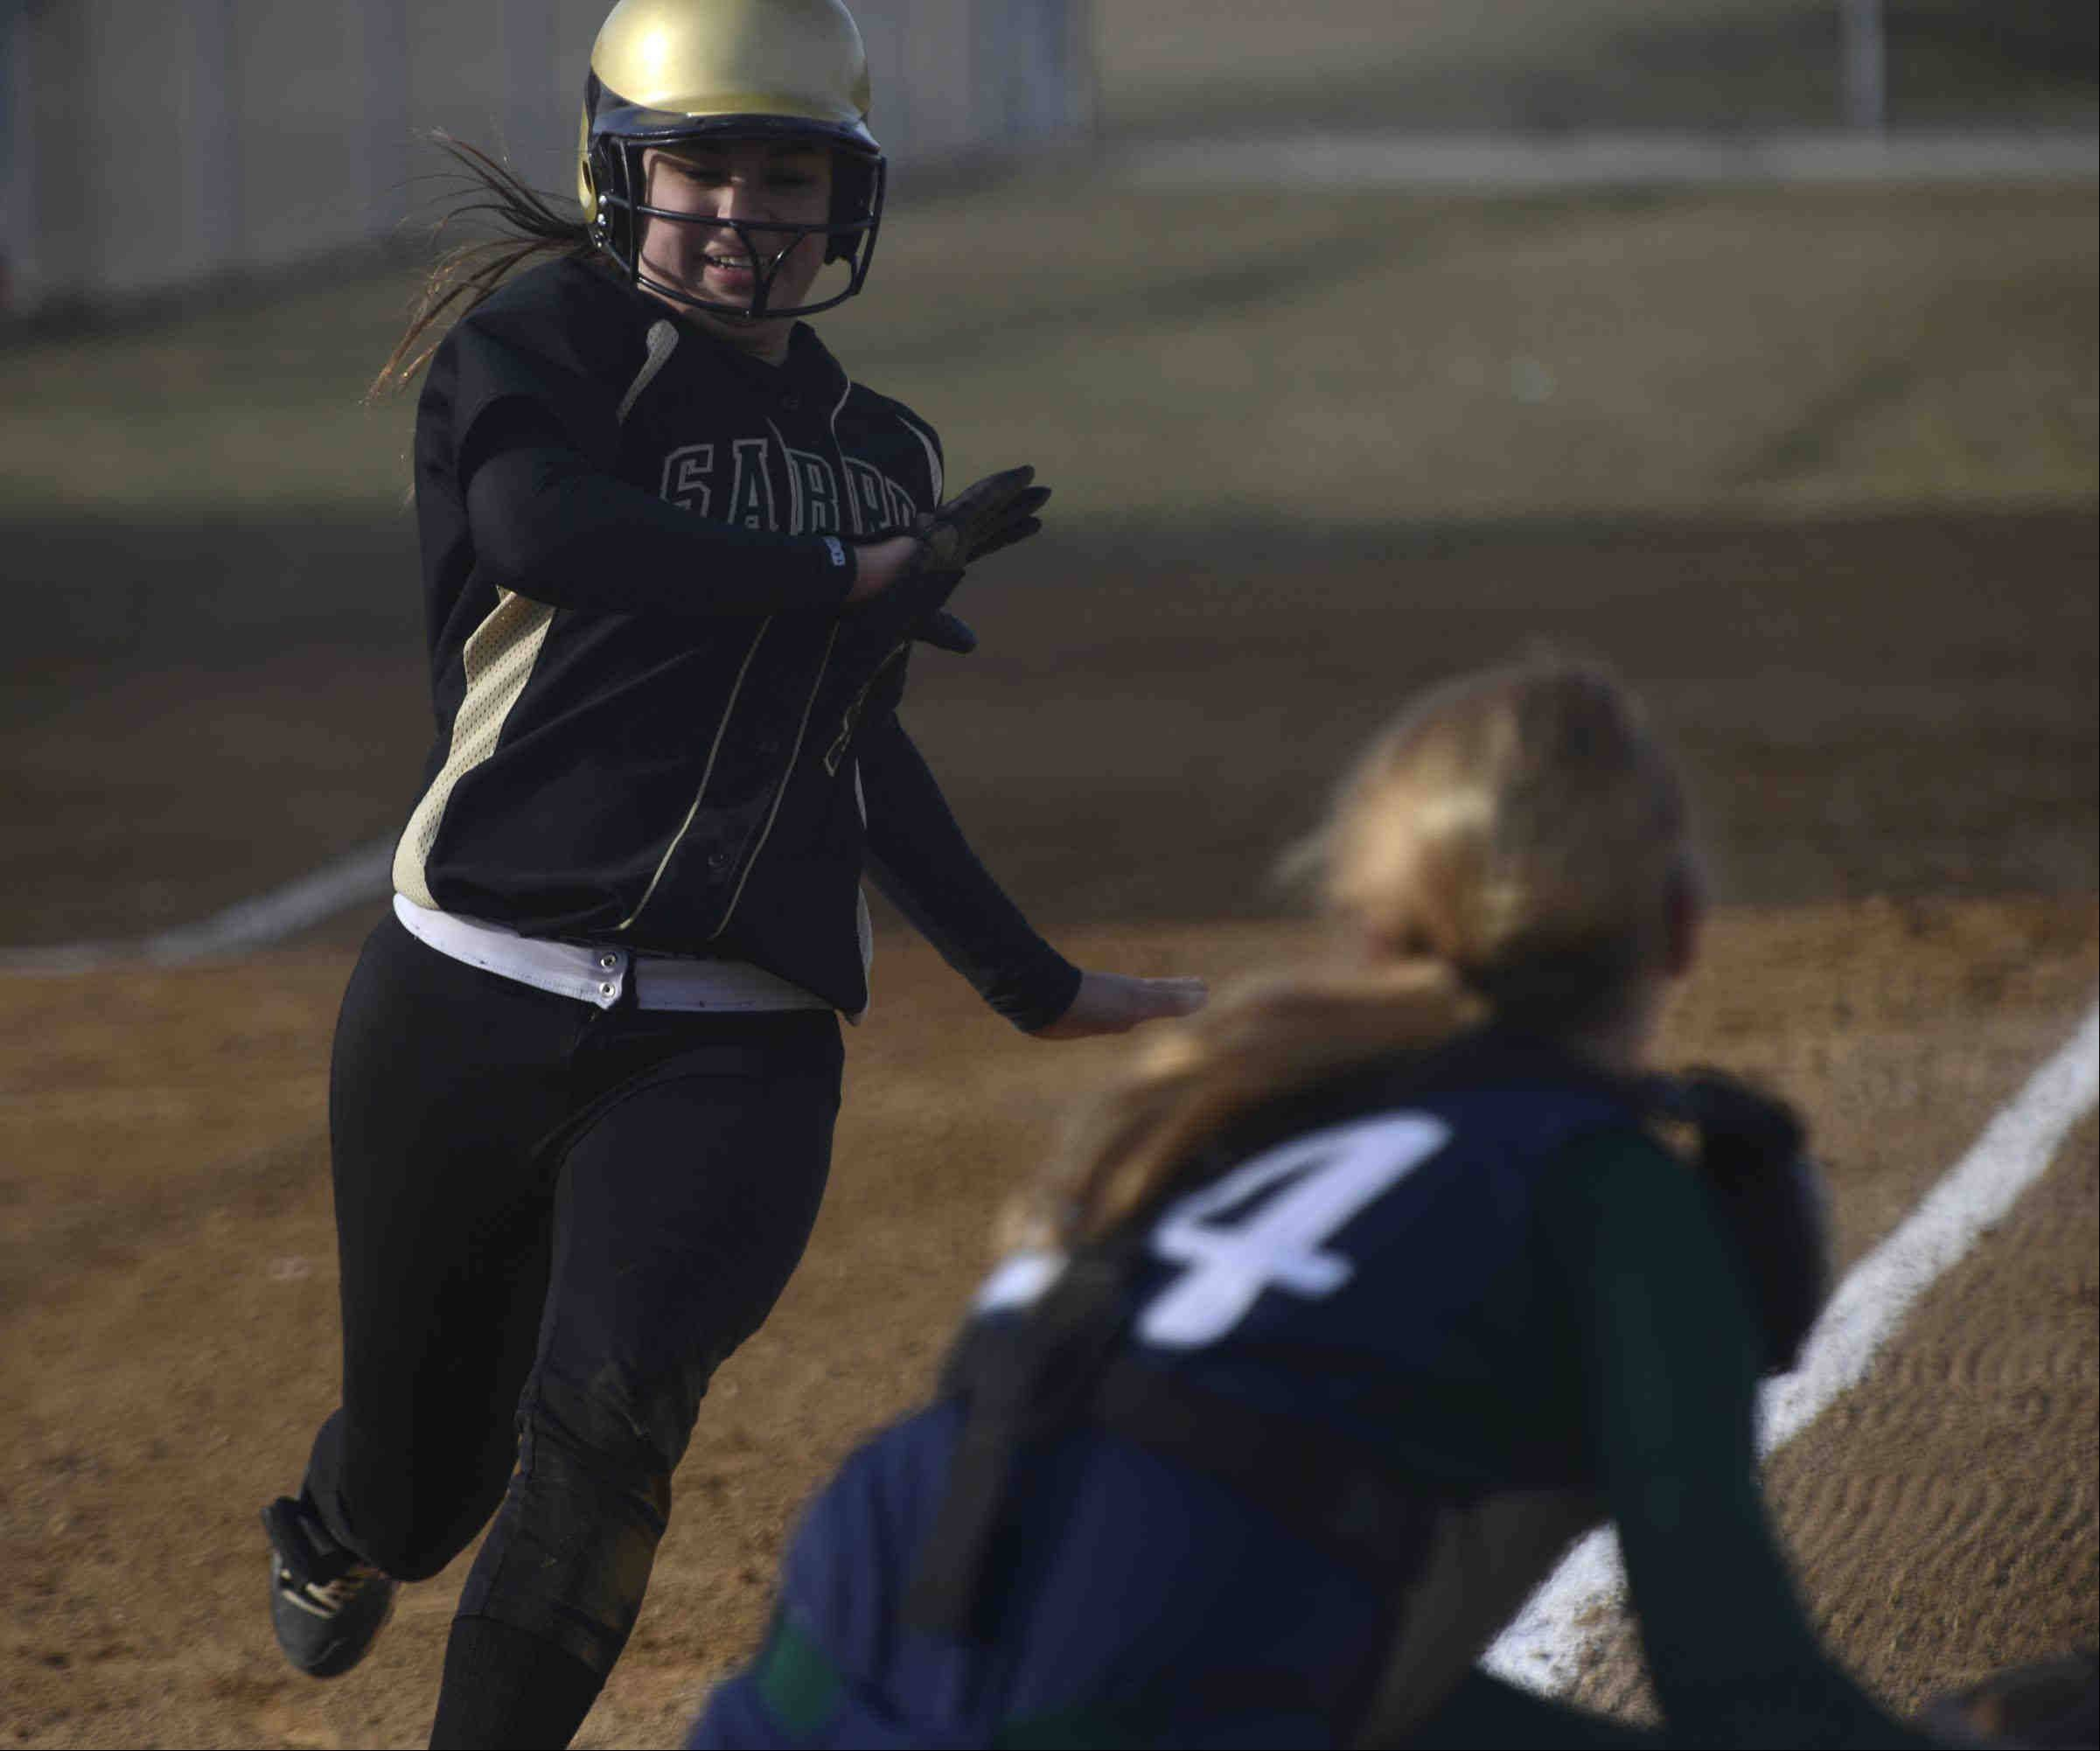 Bartlett catcher Lauren Janczak has the ball ready as Streamwood's Olivia Reyna bears down on the plate Wednesday in Bartlett. She was out.